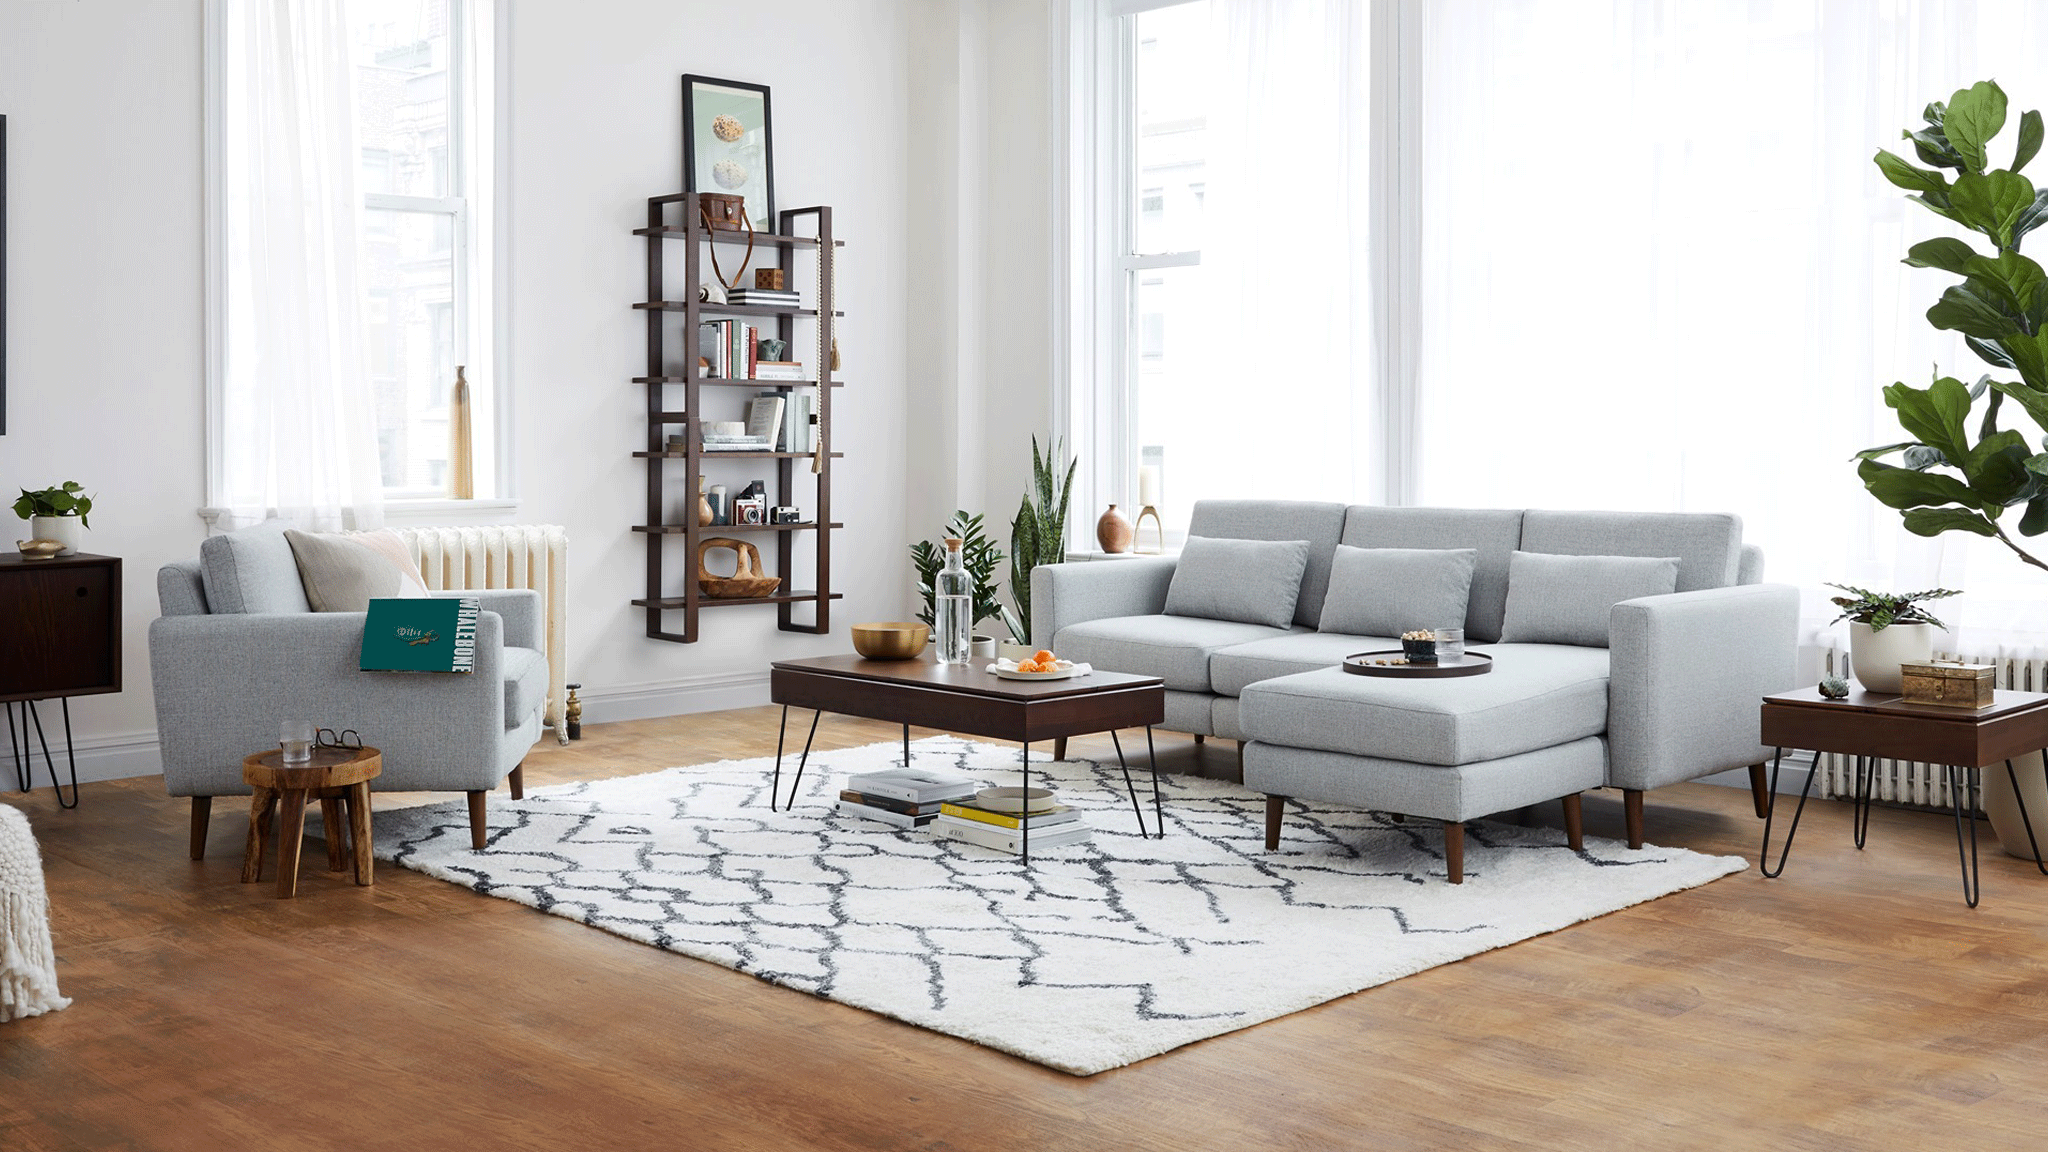 12 Best Sofa-in-a-Box Brands of 12 - Couch in a Box